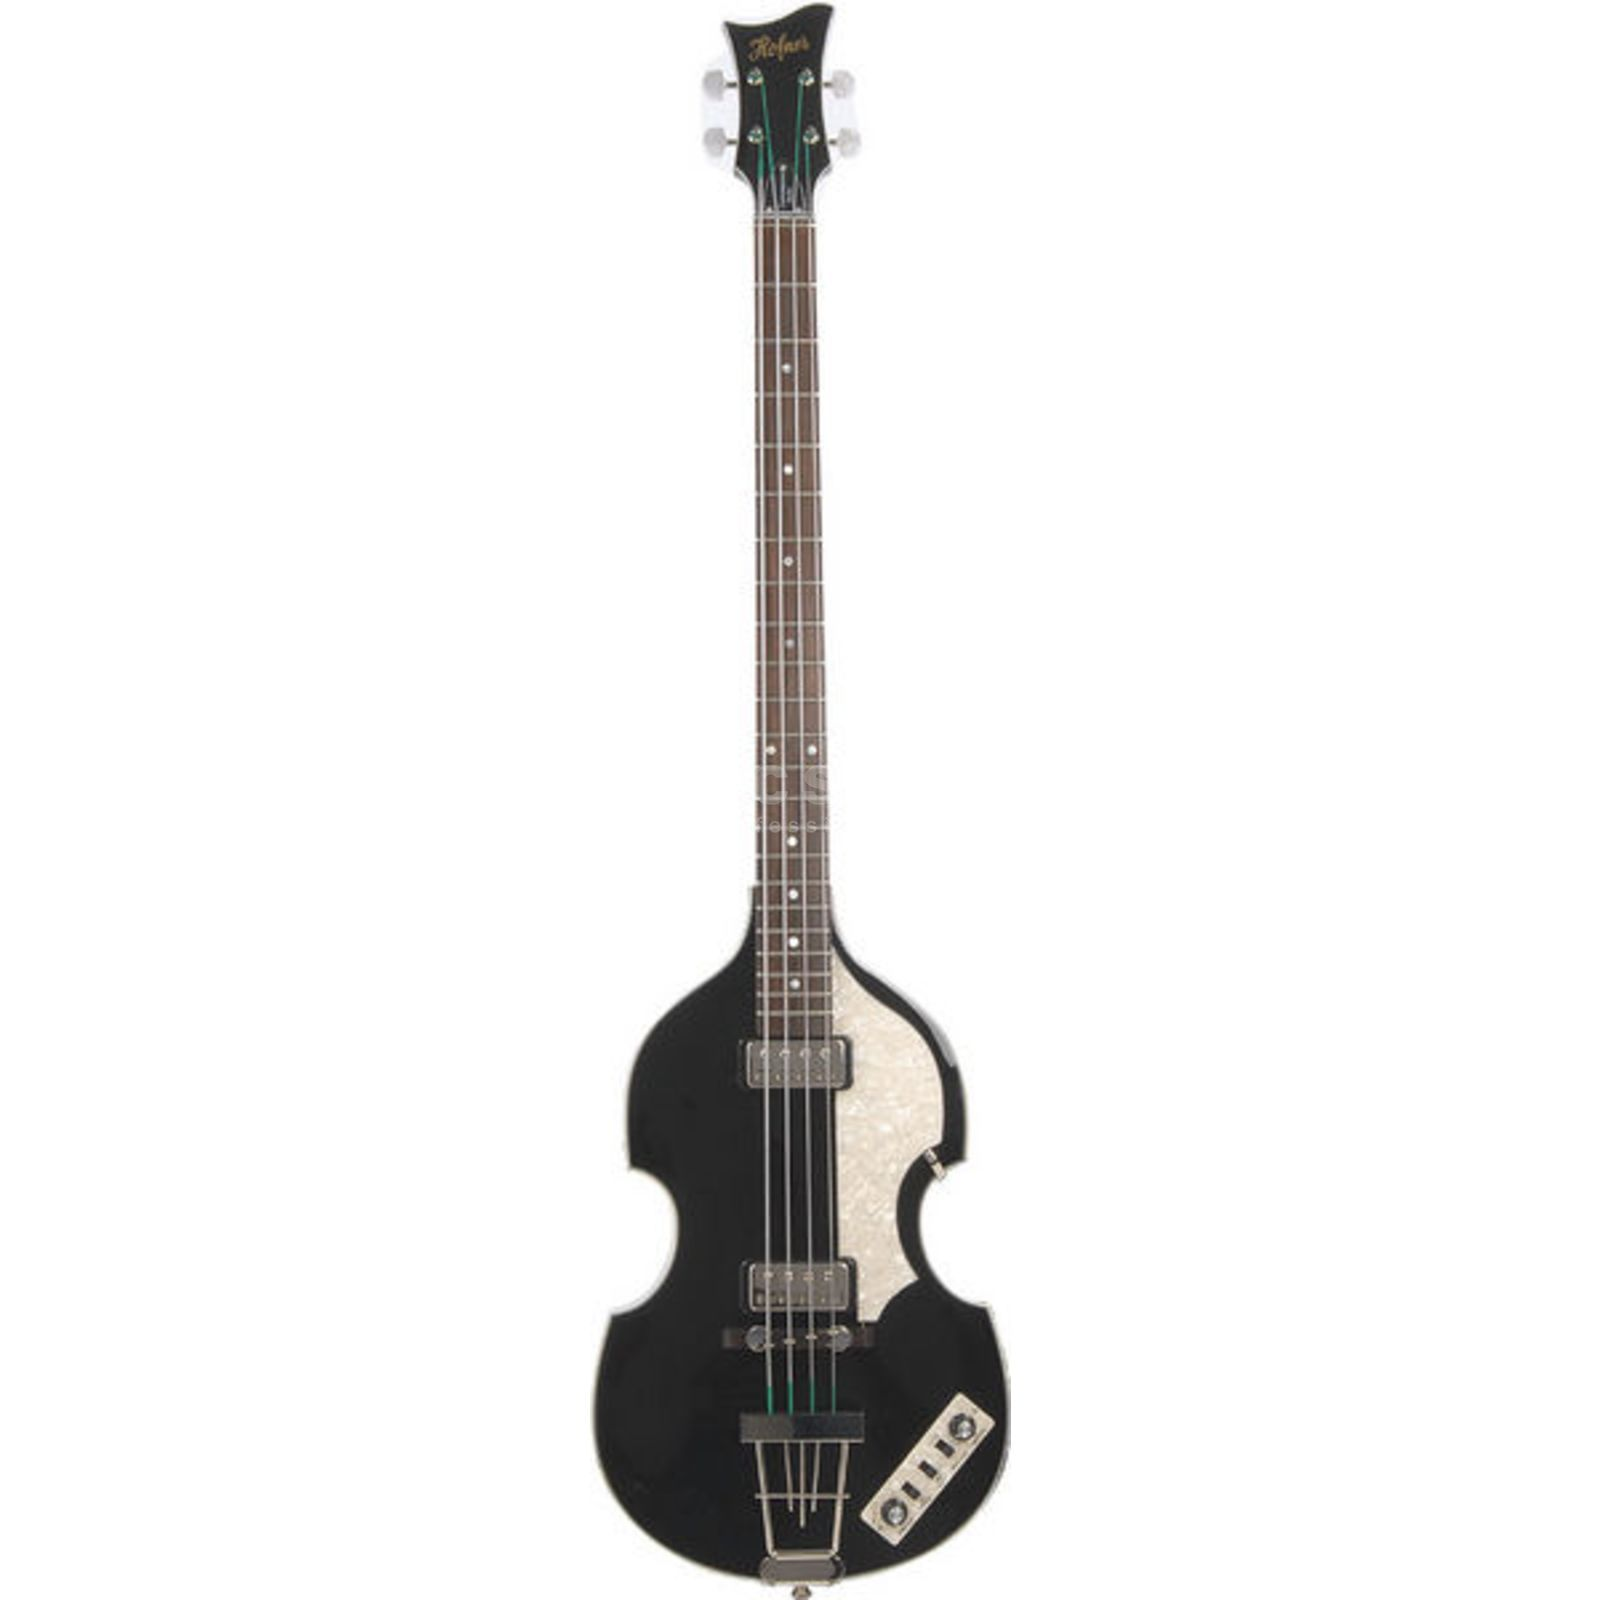 Höfner Contemporary Violin Bass Black HCT-500/1-BK B-Stock Image du produit